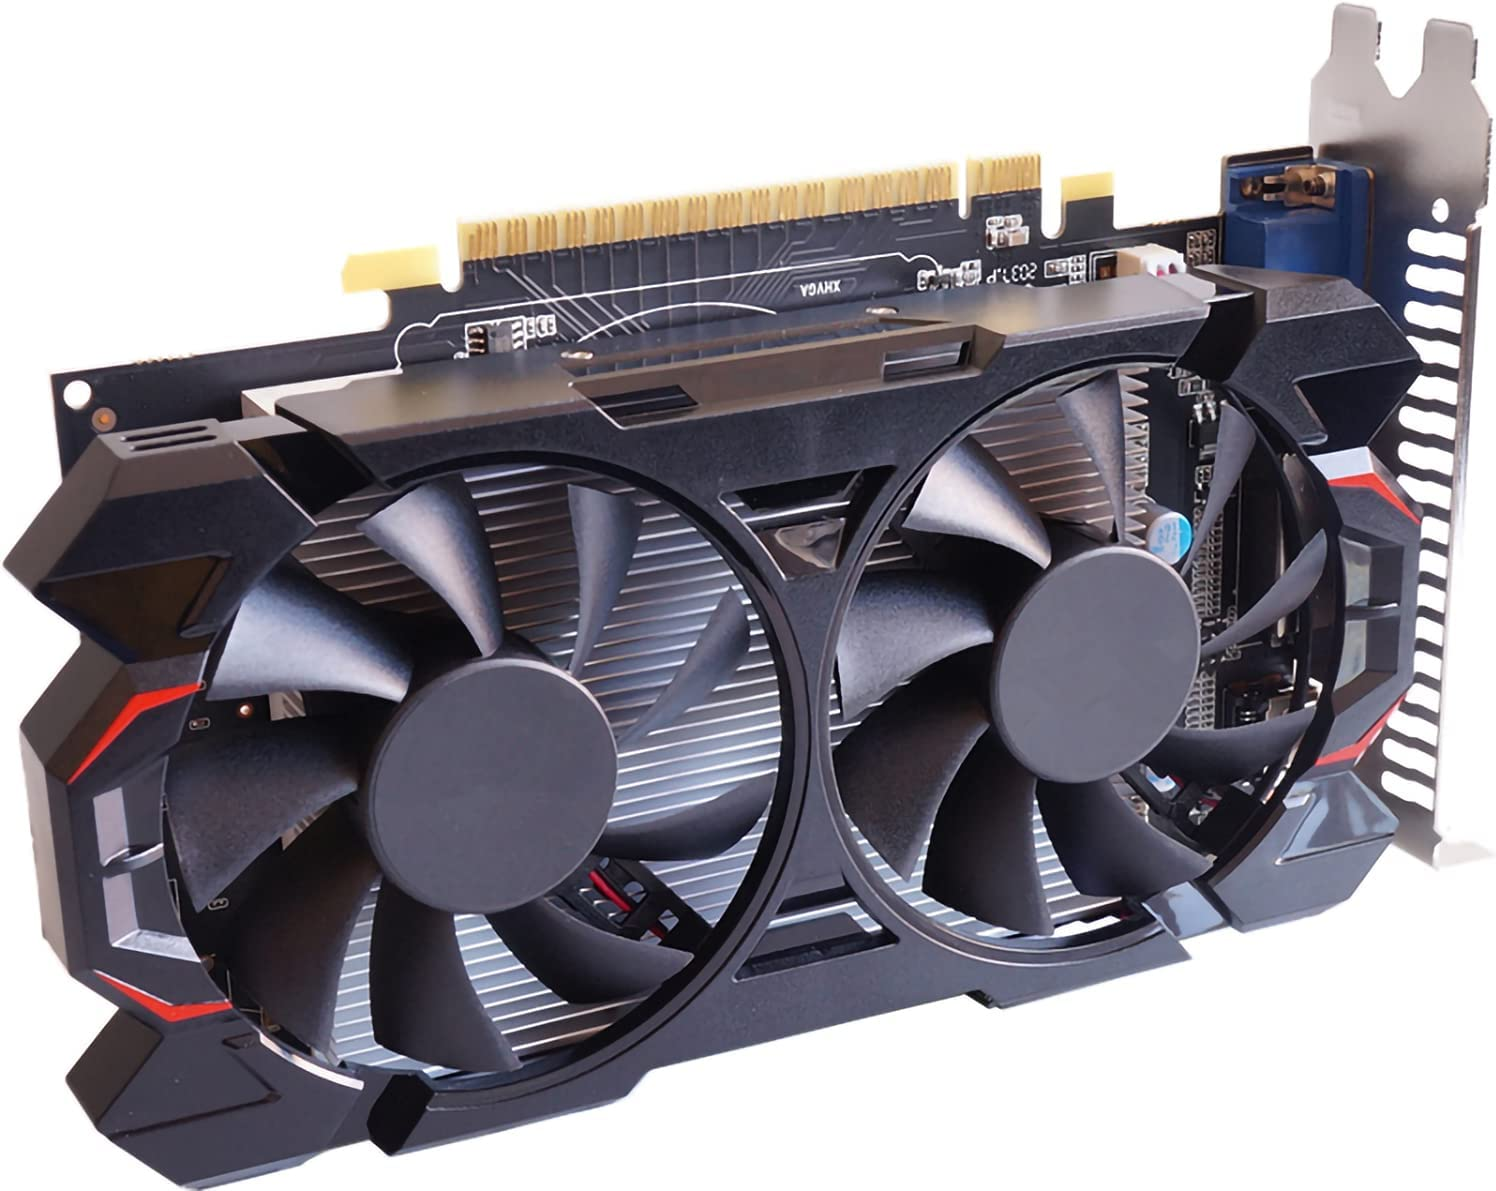 Computer Gaming Graphic Card GeForce GTX 1050 Ti 4GB GDDR5 128-Bit for PC,GTX 1050Ti 4GB Video Card for PC Gaming PCI Express 3.0 16X DP, DVI, HDMI Interface with Twin Cooling Fan